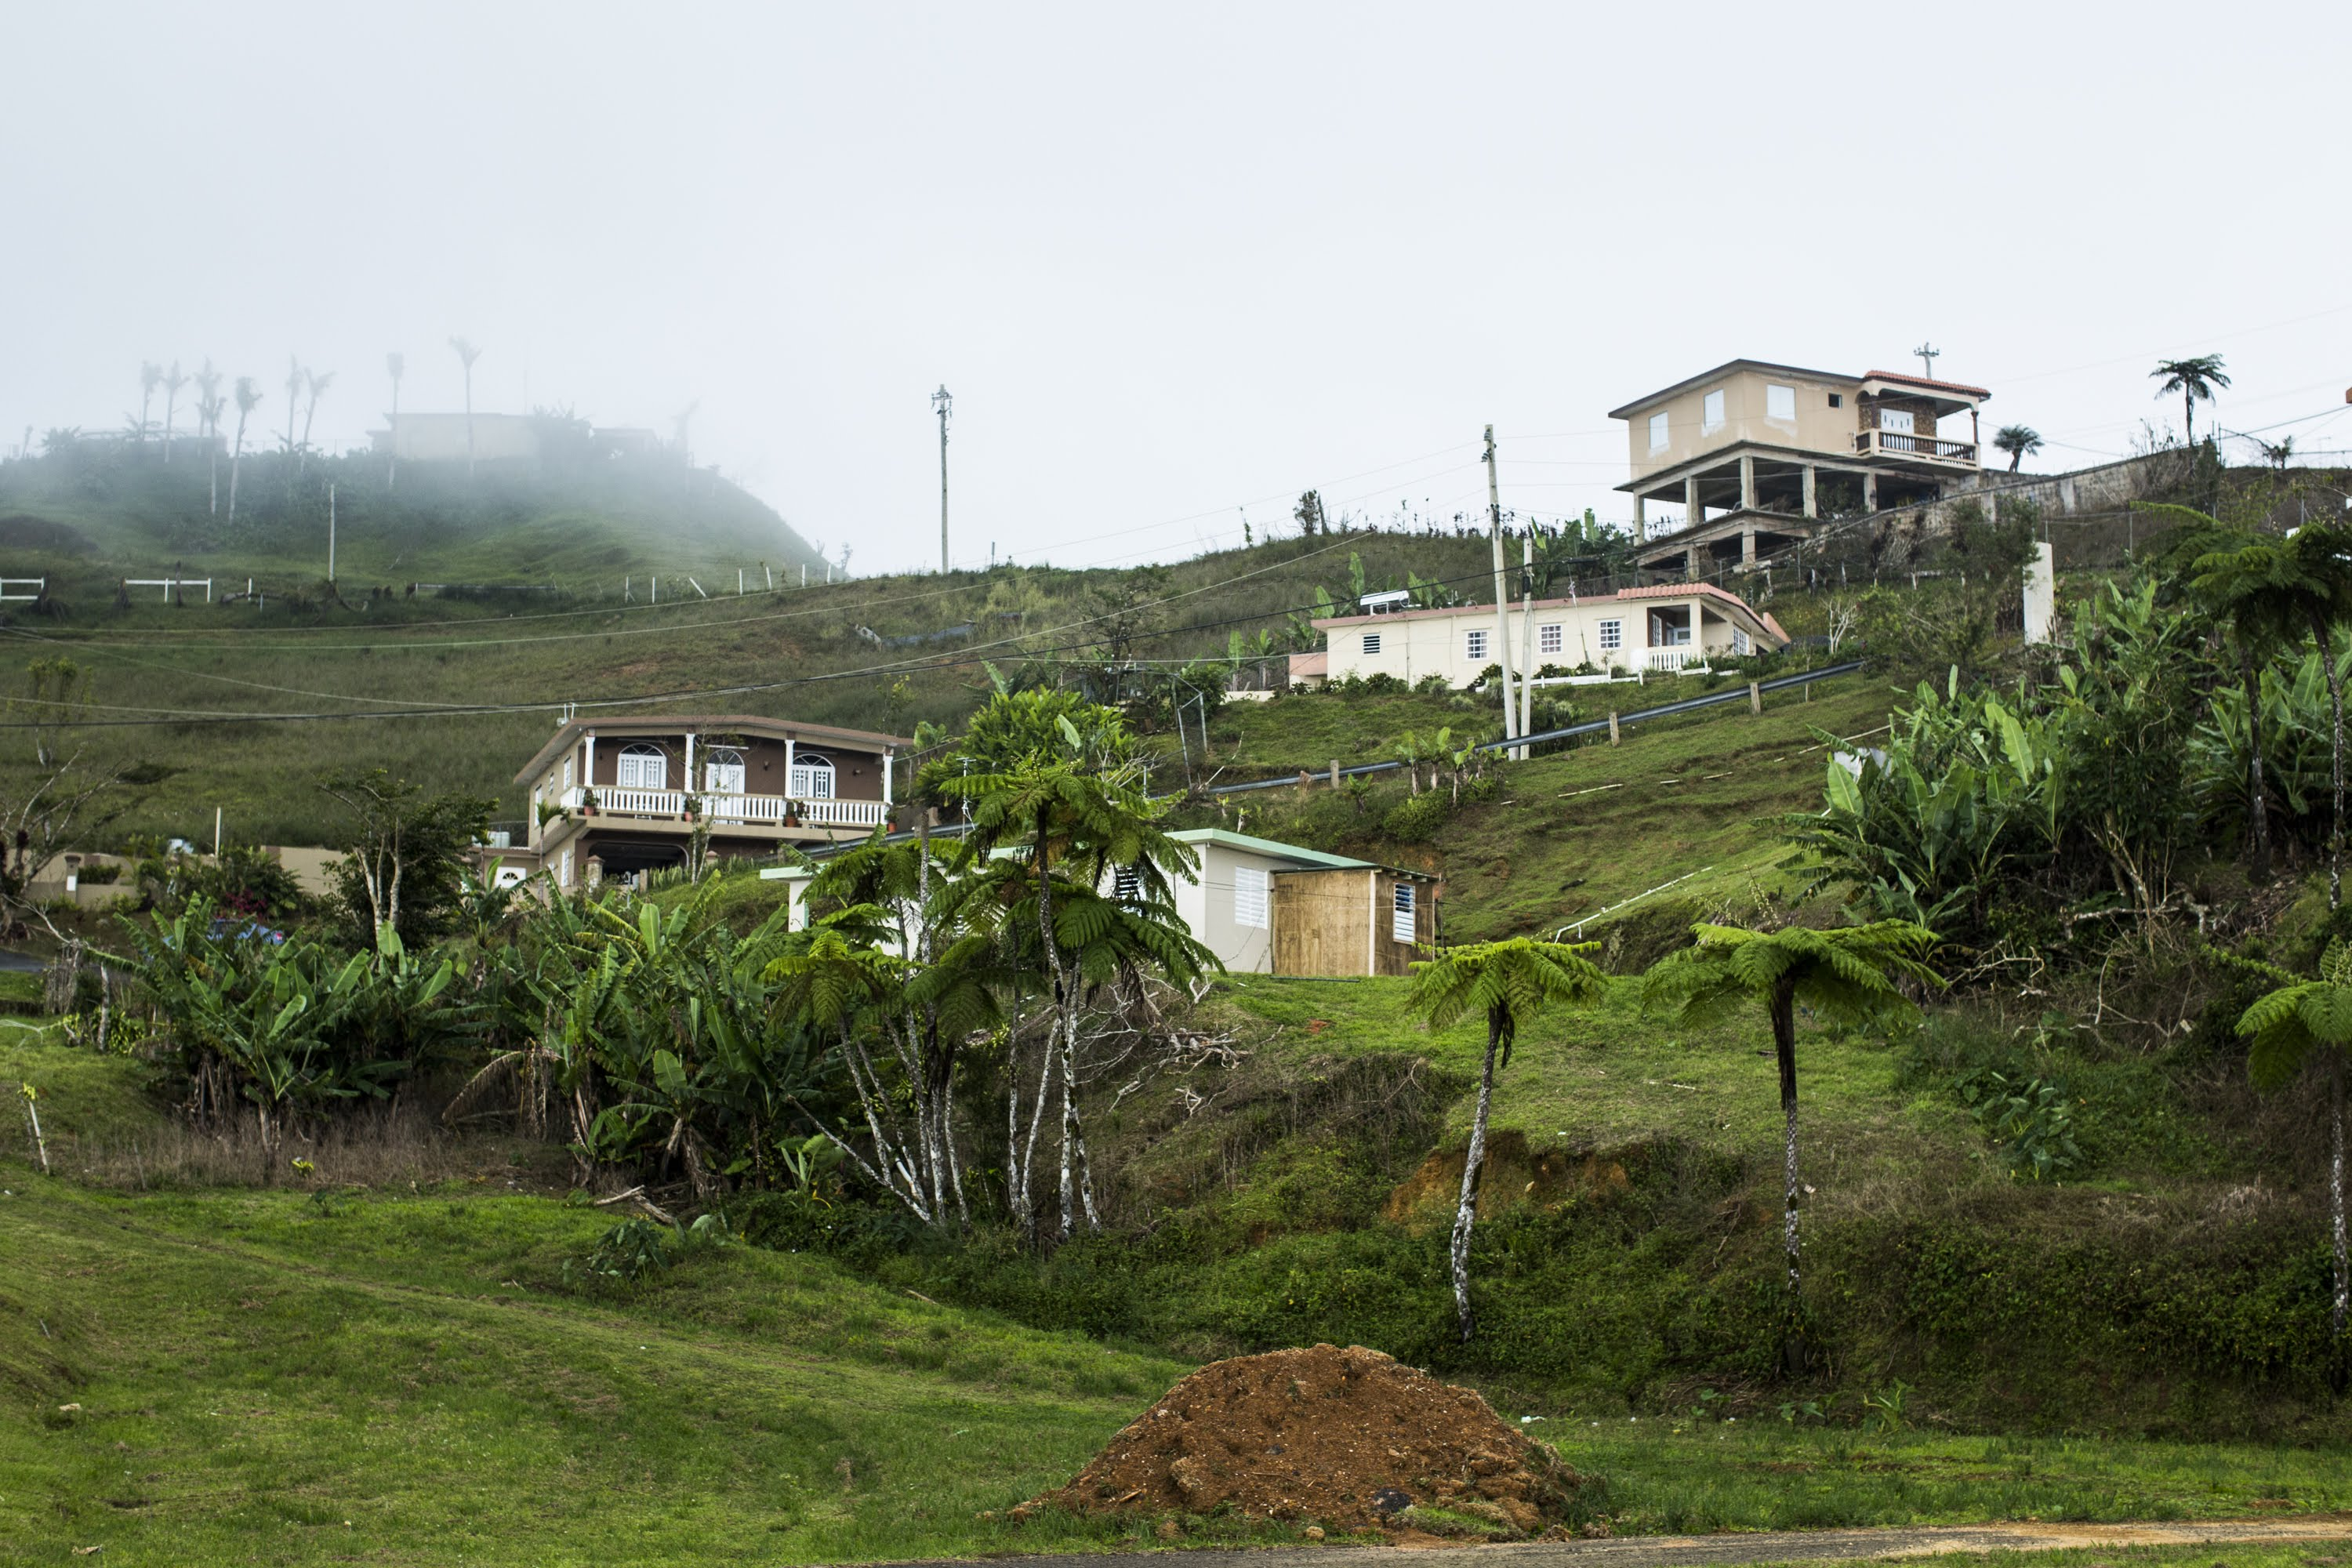 View of Bauta Abajo community in Orocovis, P.R., on April 5, 2018. The mountain top community  has been without power since hurricane Irma hit the island 7 months ago, leaving the 300 families without a reliable water source.  Por Los Nuestros, a local non-profit that was created in response to hurricane Maria's aftermath, has been working in the community to donate the installation and equipment to energize and store solar power for their potable water system. Months after the storm the water pumps were being powered by a gas power generator, that could only provide intermittent water of the residents. With funds from Direct Relief two solar power systems could be completed for their two water pumps. (Erika P. Rodríguez for Direct Relief)